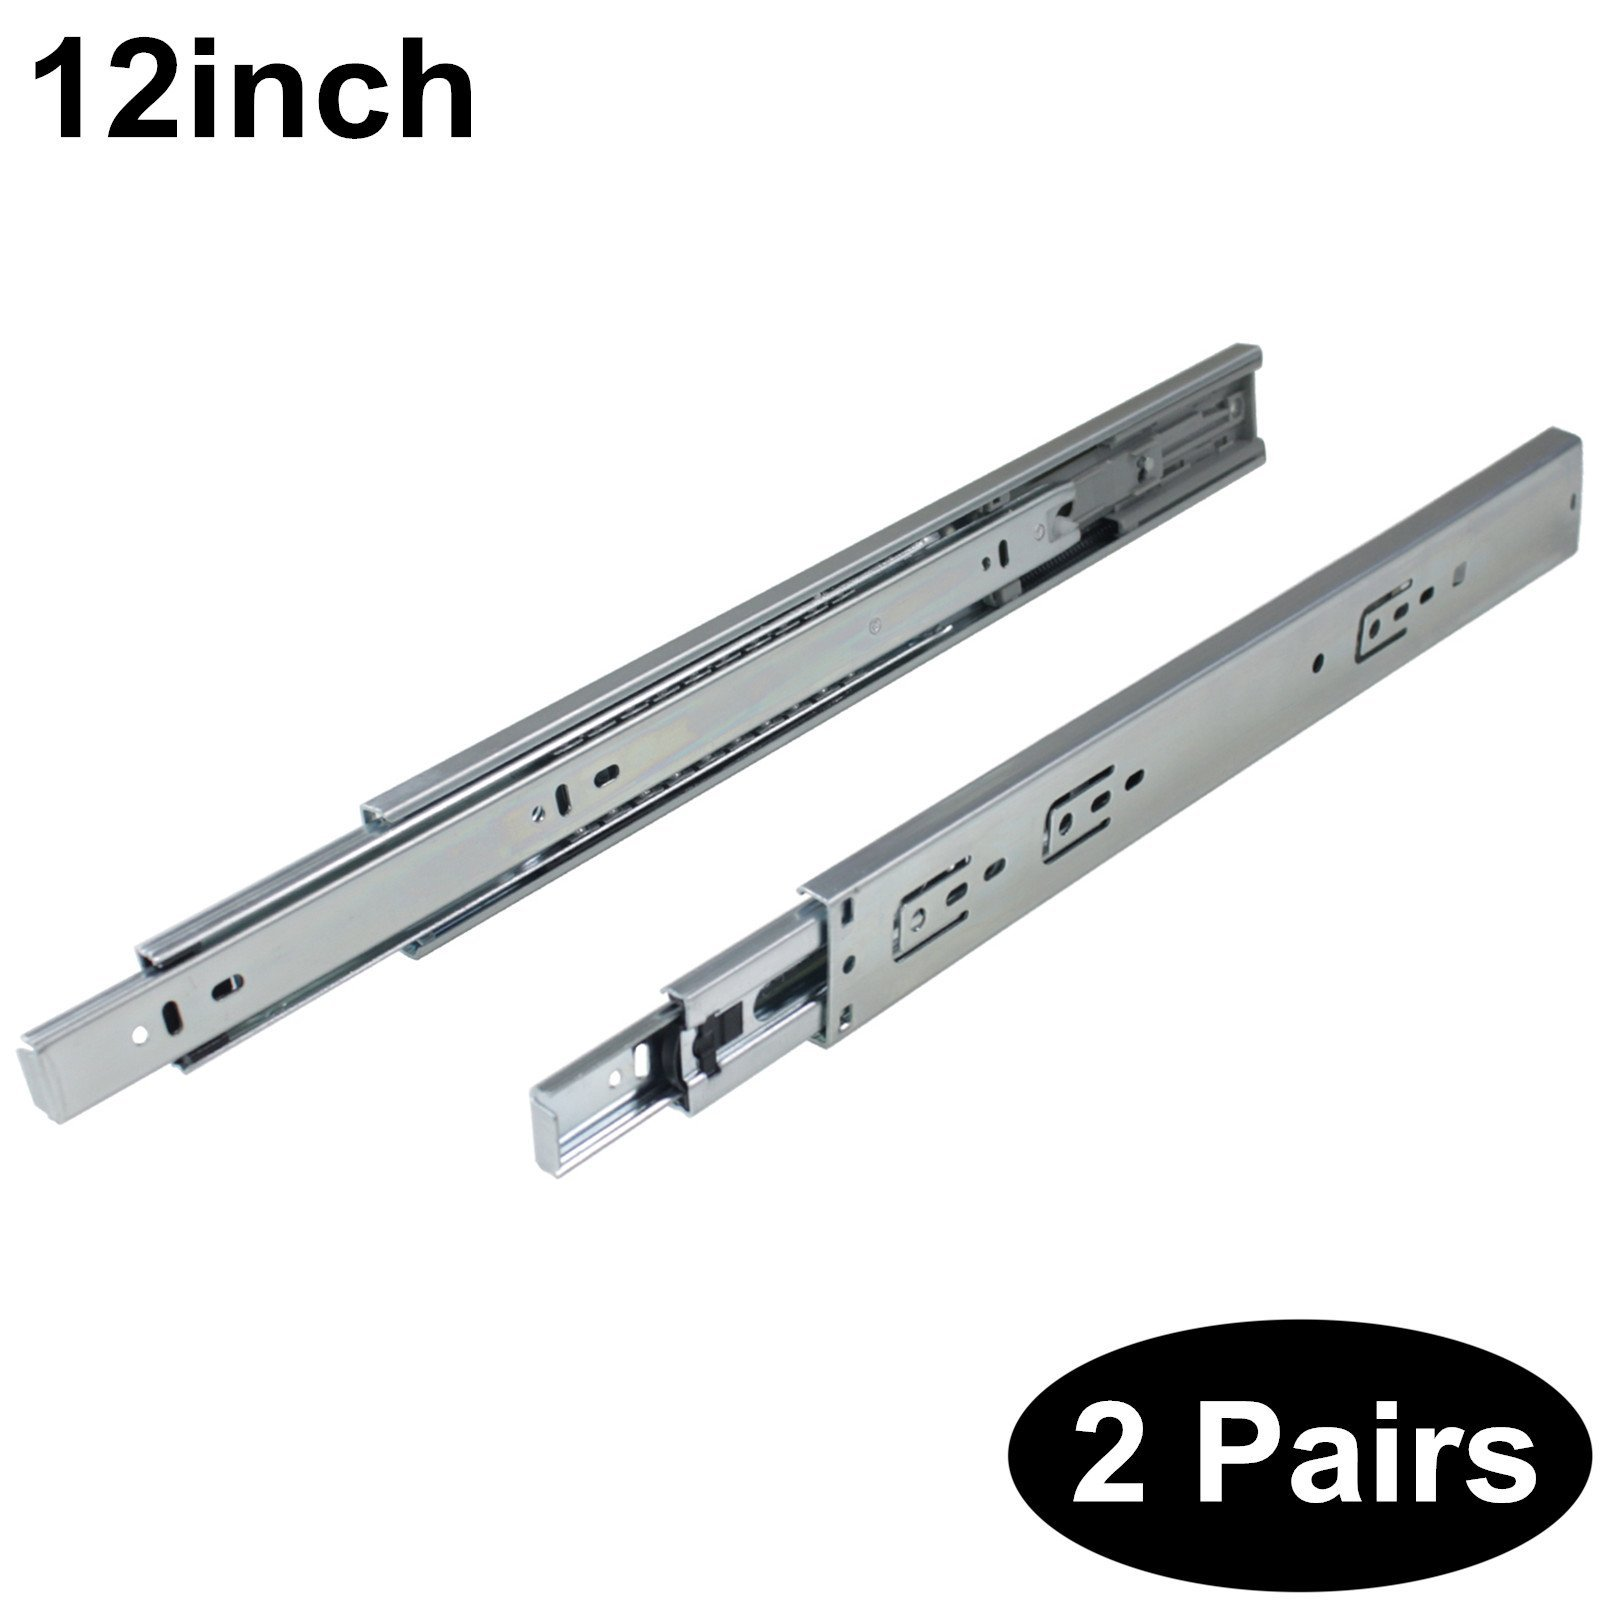 2 Pairs Soft Close DHH32-12 inch Full Extension Side Mount Drawer Slides 3-Folds Ball Bearing;100-pound Capacity